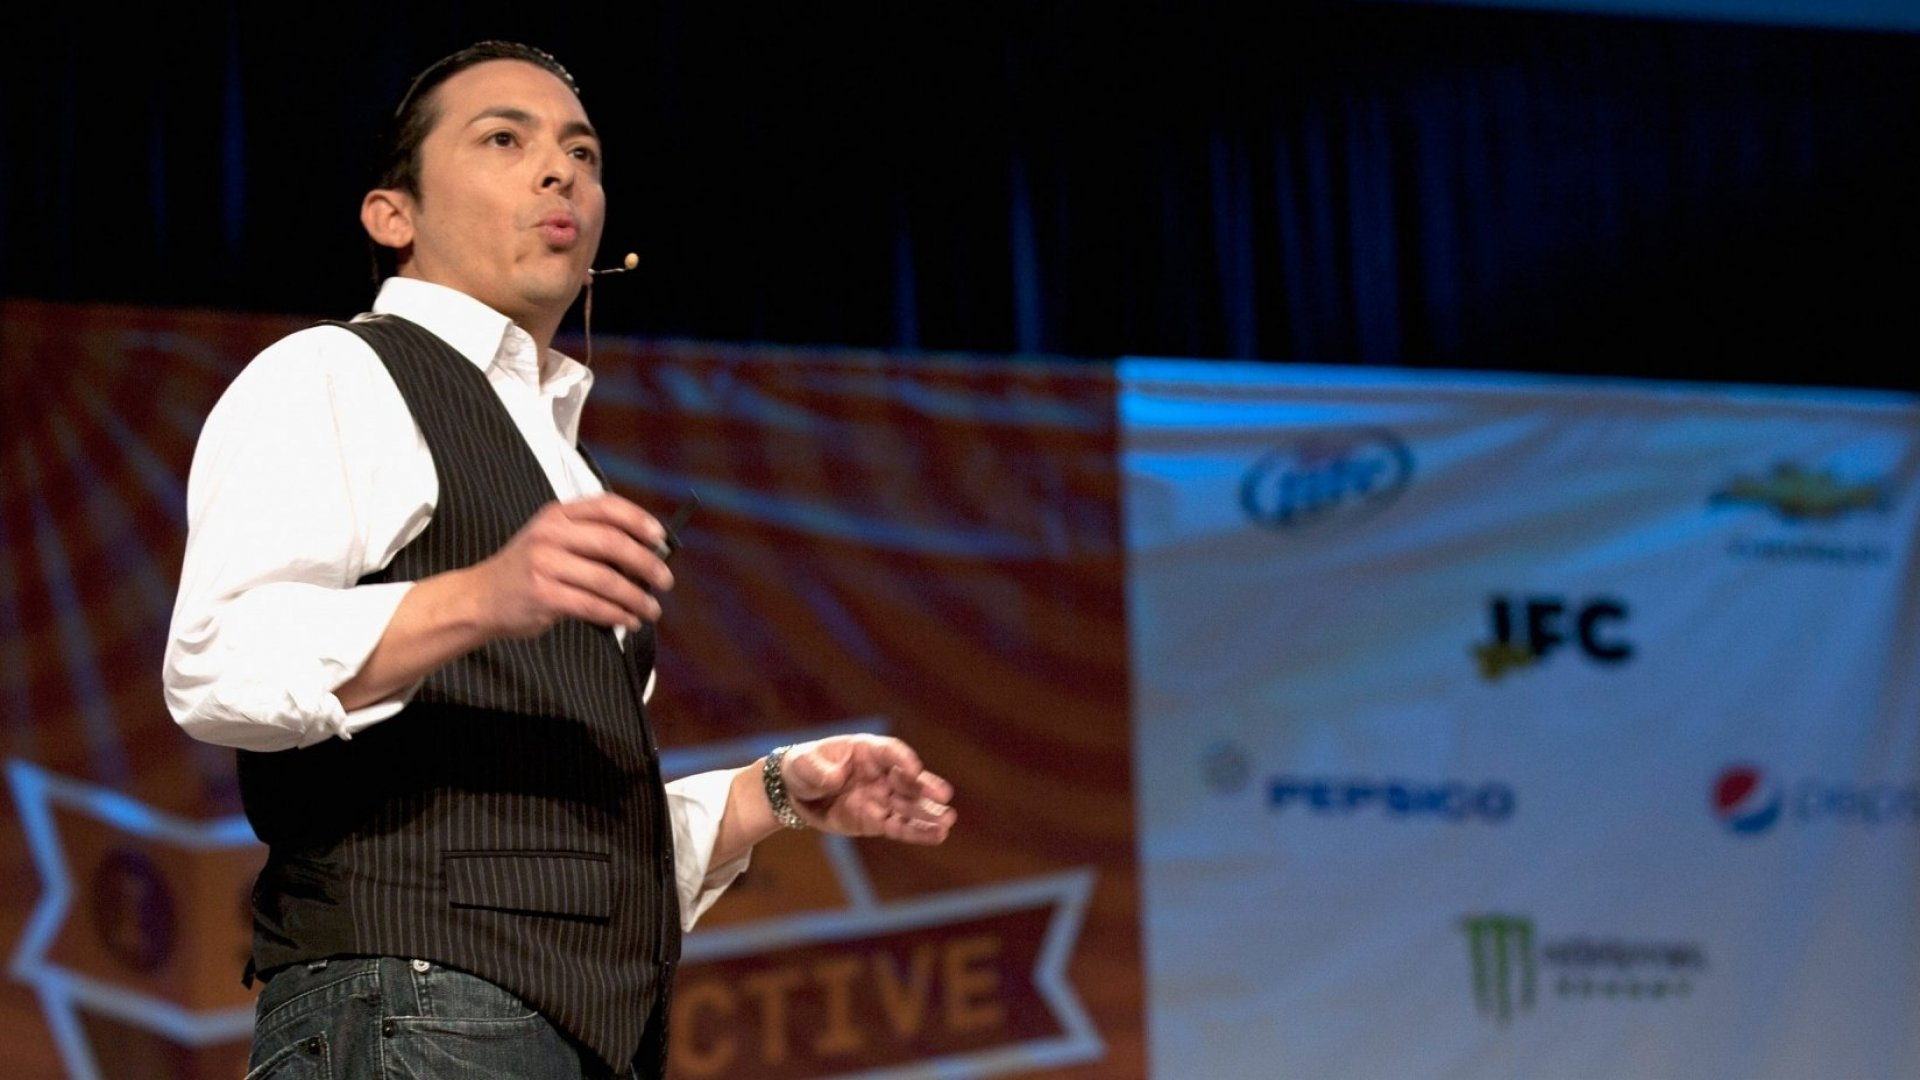 Much of Brian Solis' writing has sought to help marketers engage their audiences better. With this latest book he's trying to lead by example, utilizing online design methods intended to keep readers engaged. (Photo by Sean Mathis/WireImage)